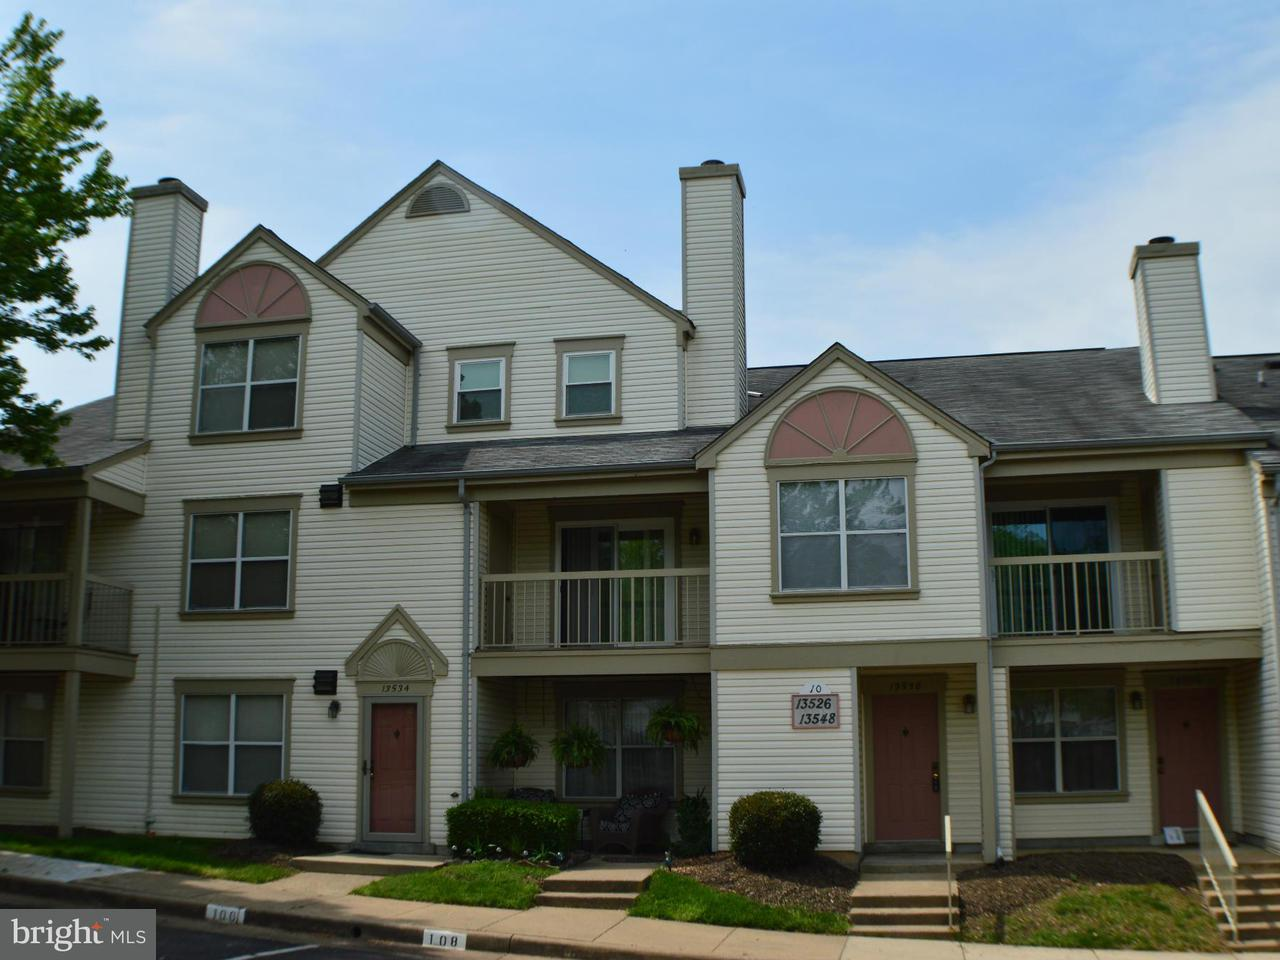 Other Residential for Rent at 13538 Orchard Dr #3538 Clifton, Virginia 20124 United States